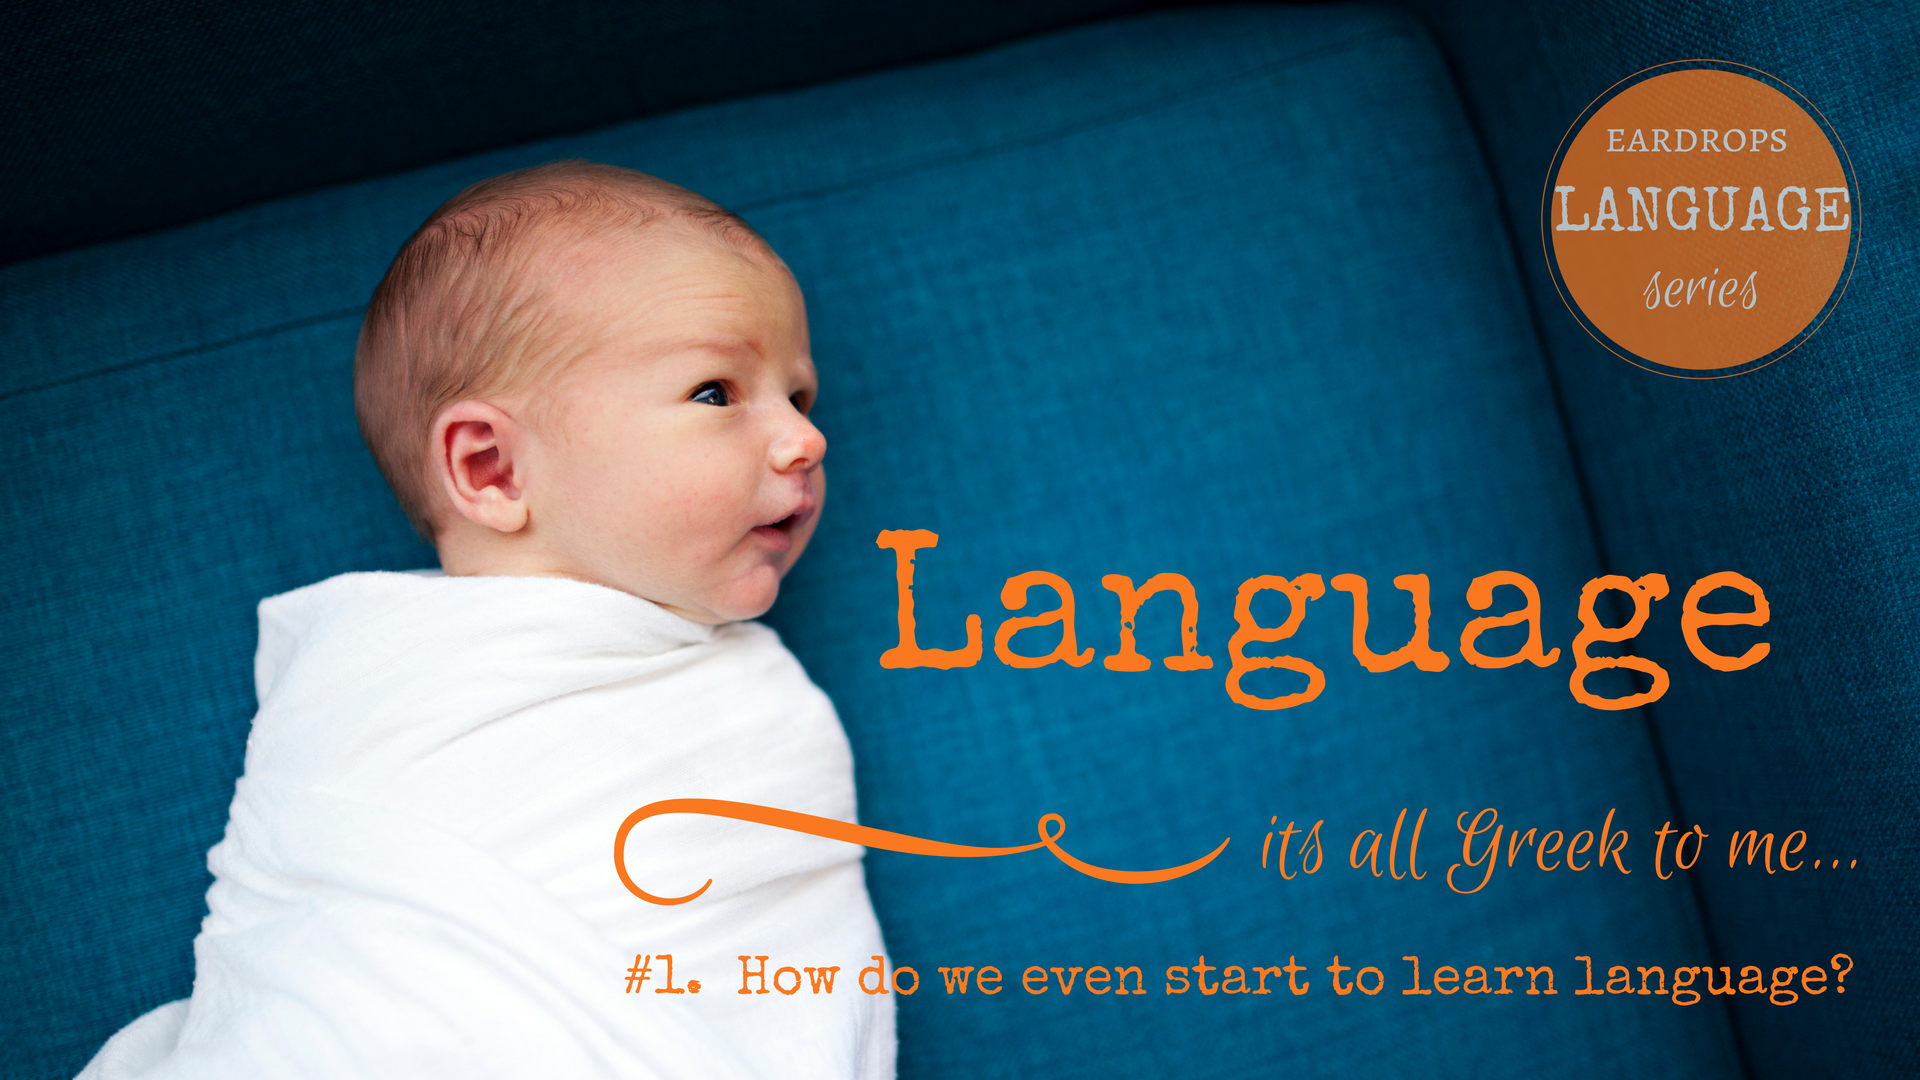 Eardrops blog language series title page post 1 what is language